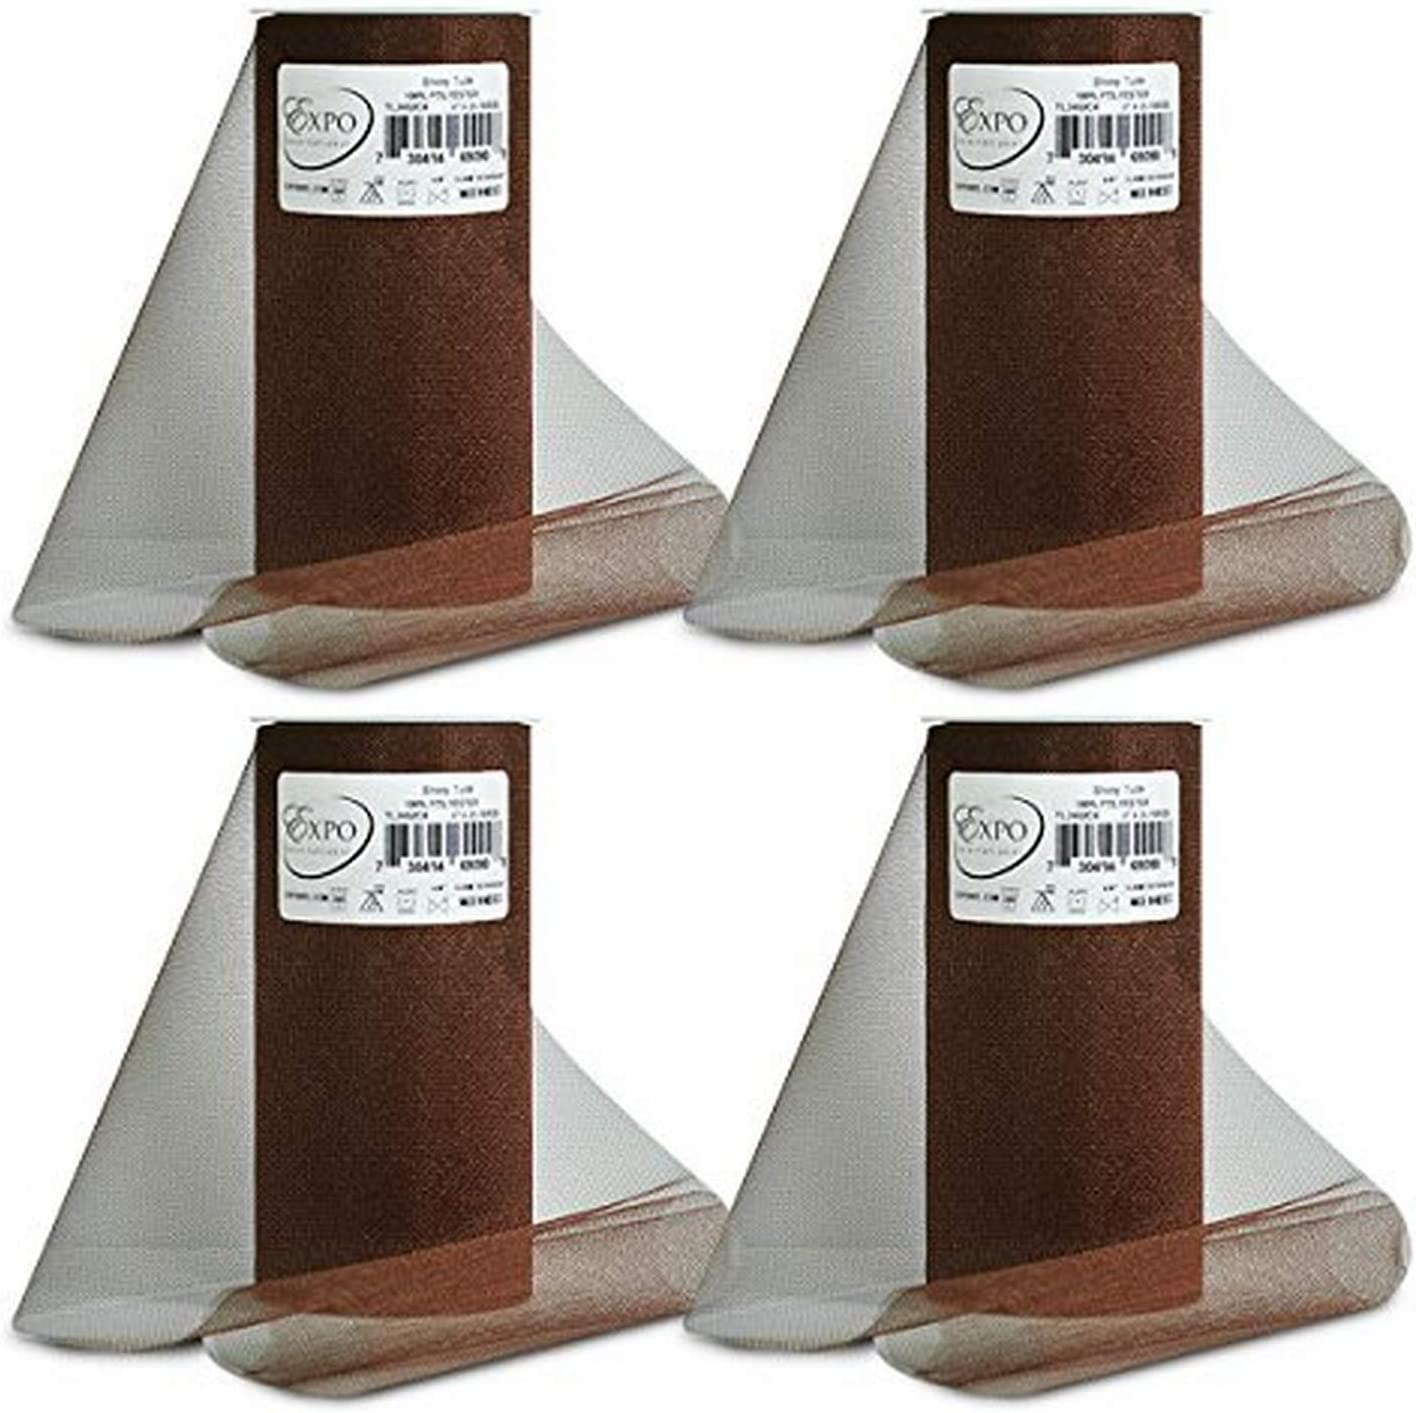 Chocolate Expo International Pack of 6 Shiny 6 Tulle Spool of 25 Yards TL2402CH-6 6 Yd 6 Piece